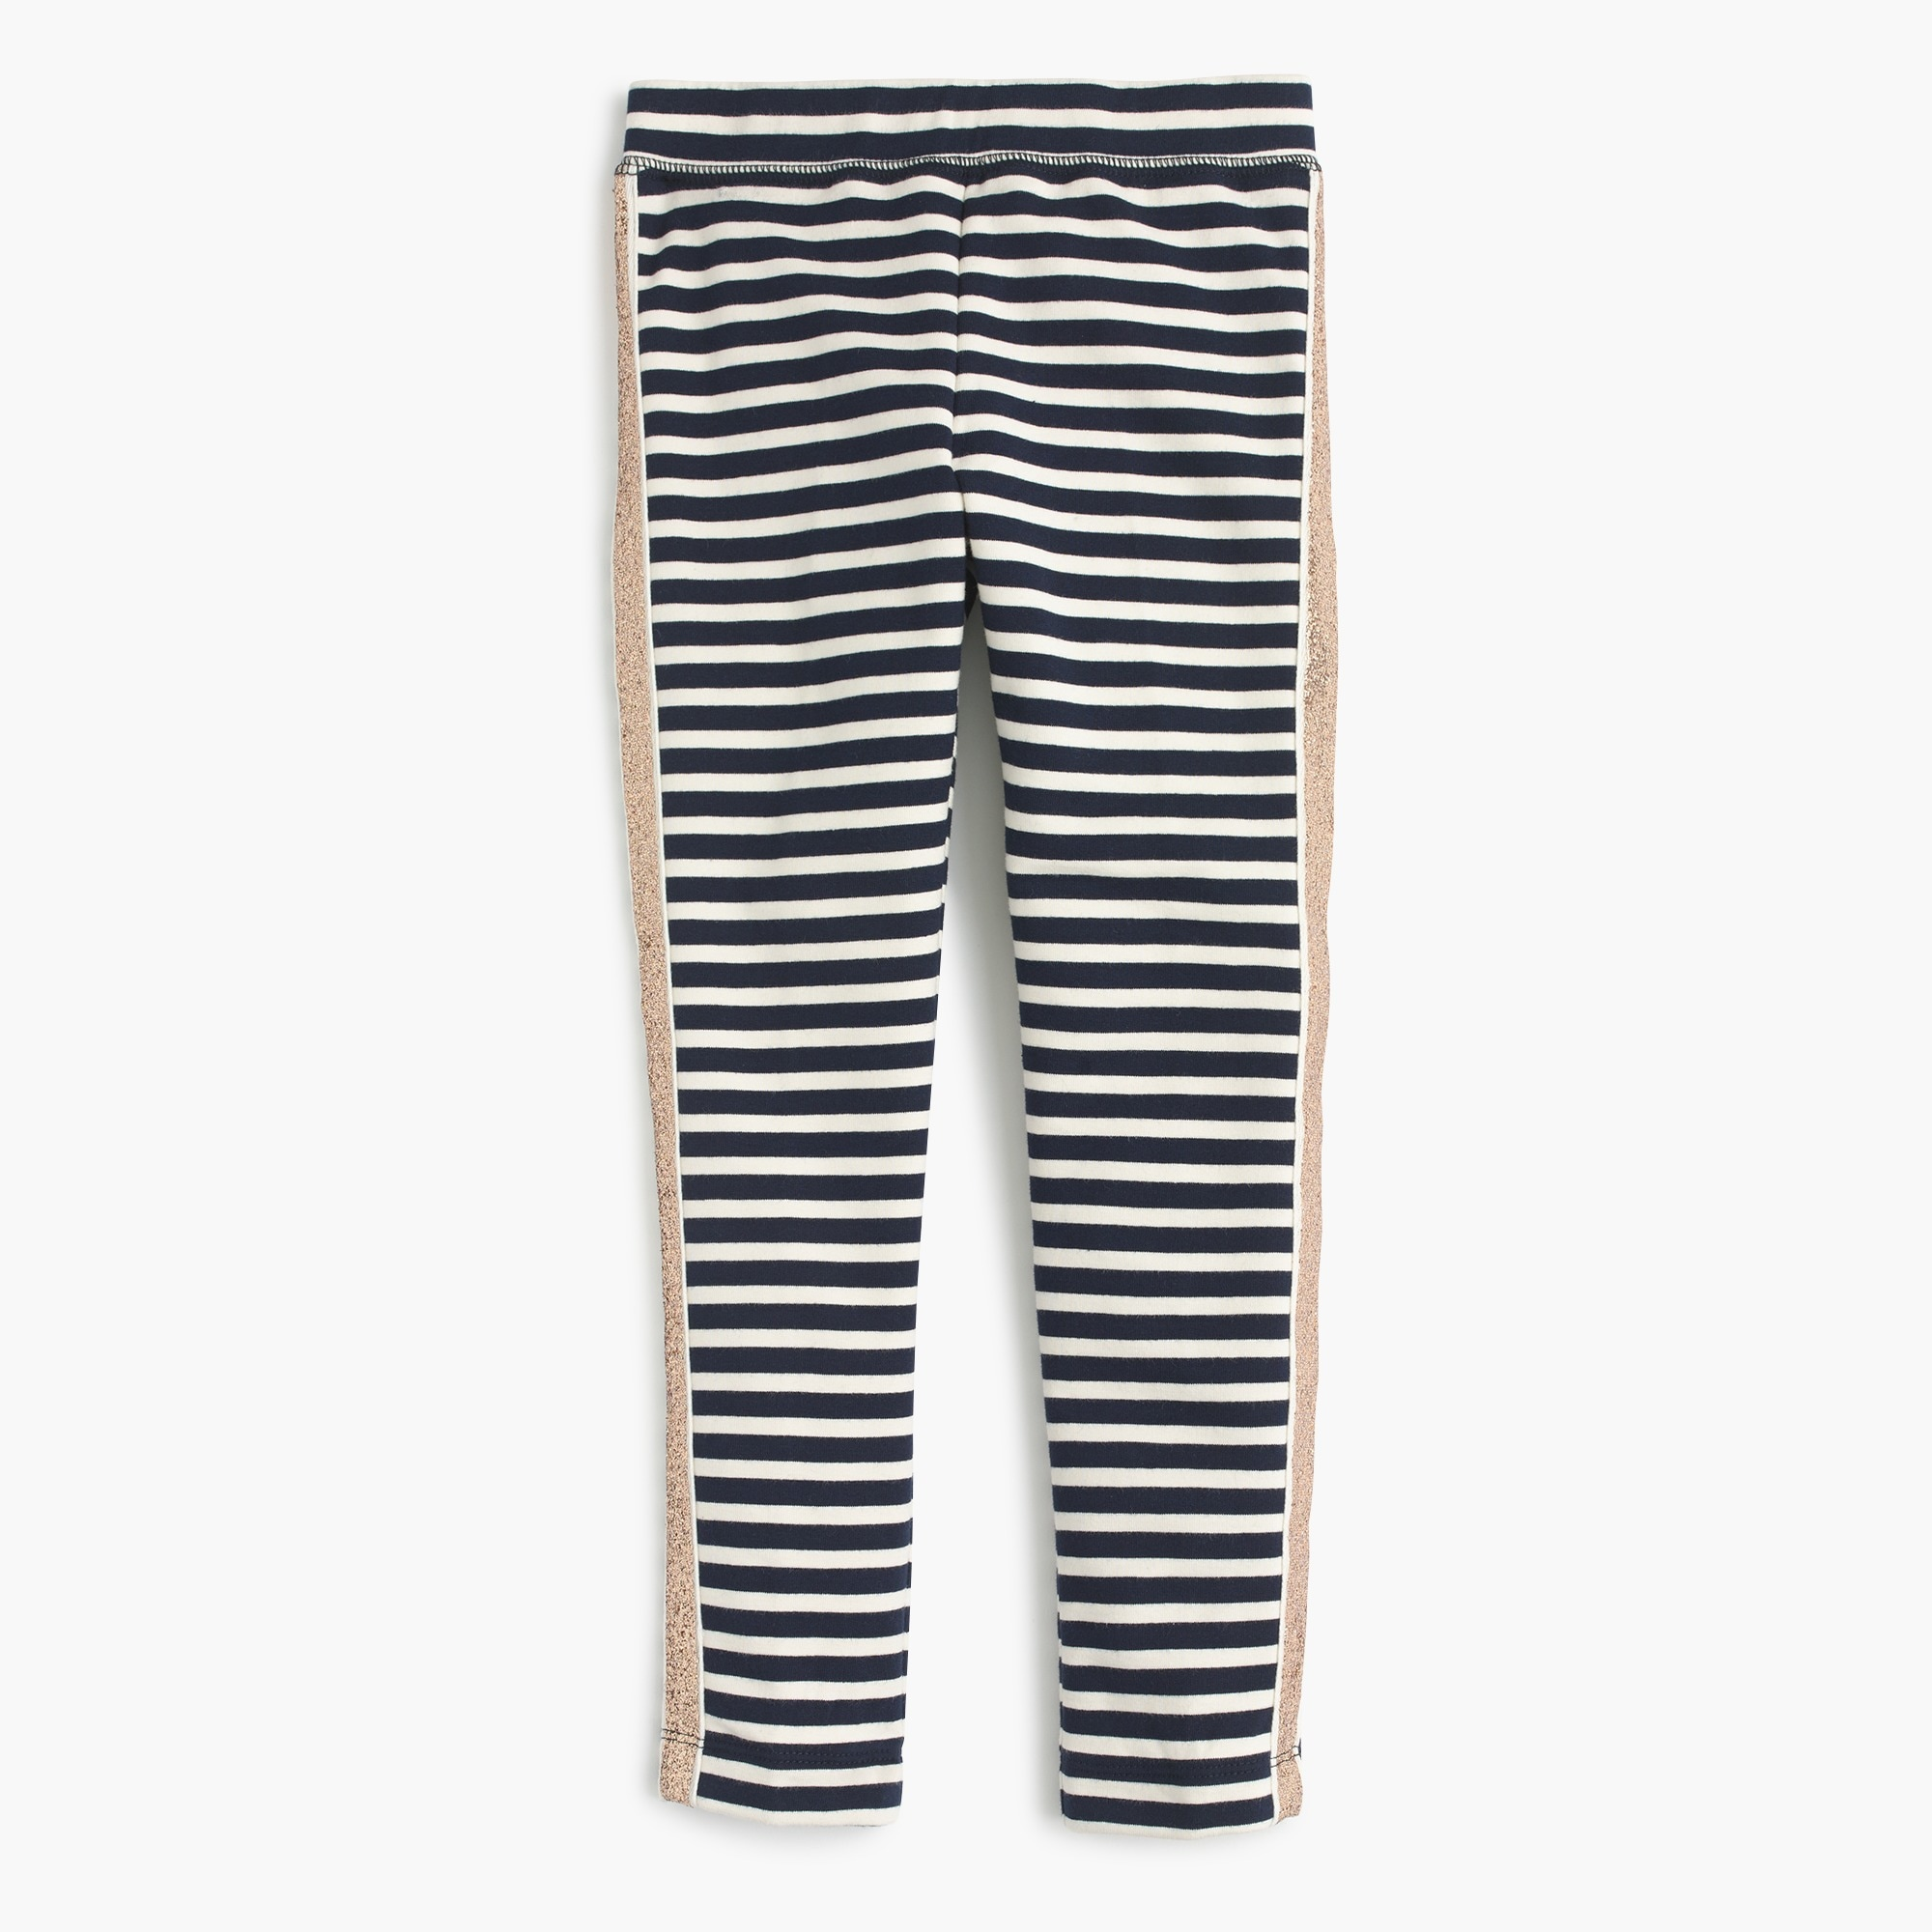 Image 1 for Girls' everyday leggings with tux stripe